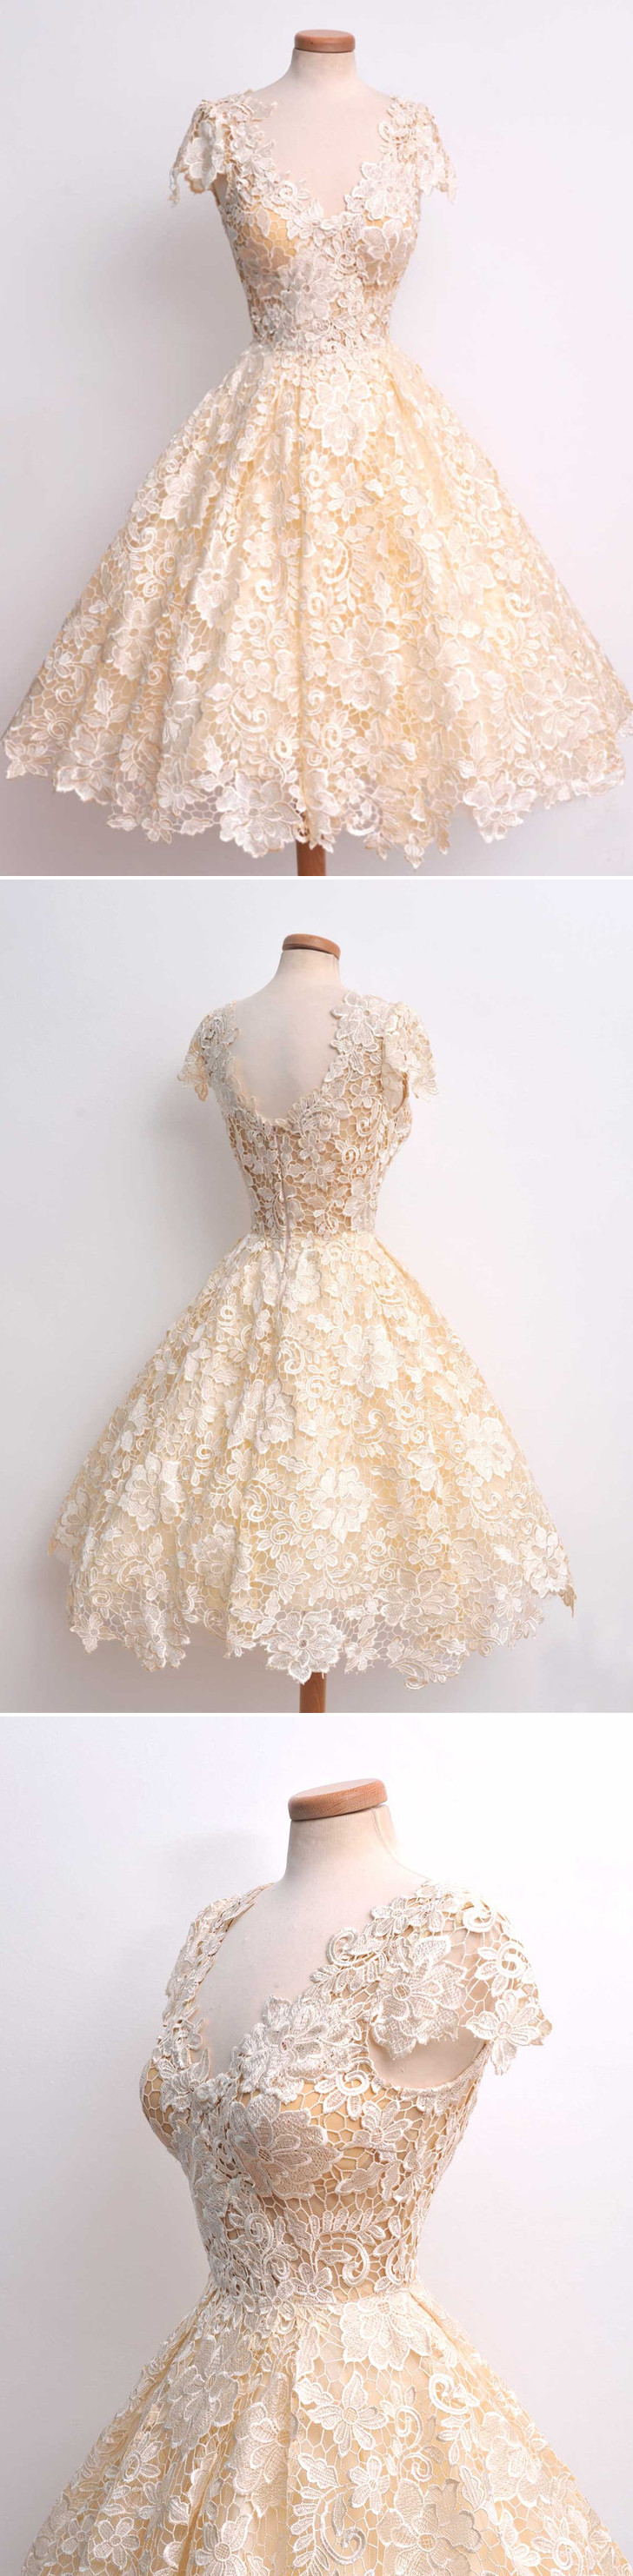 Wedding shoes for lace dress  Not to brag but this oneofakind lace dress is a real beauty You